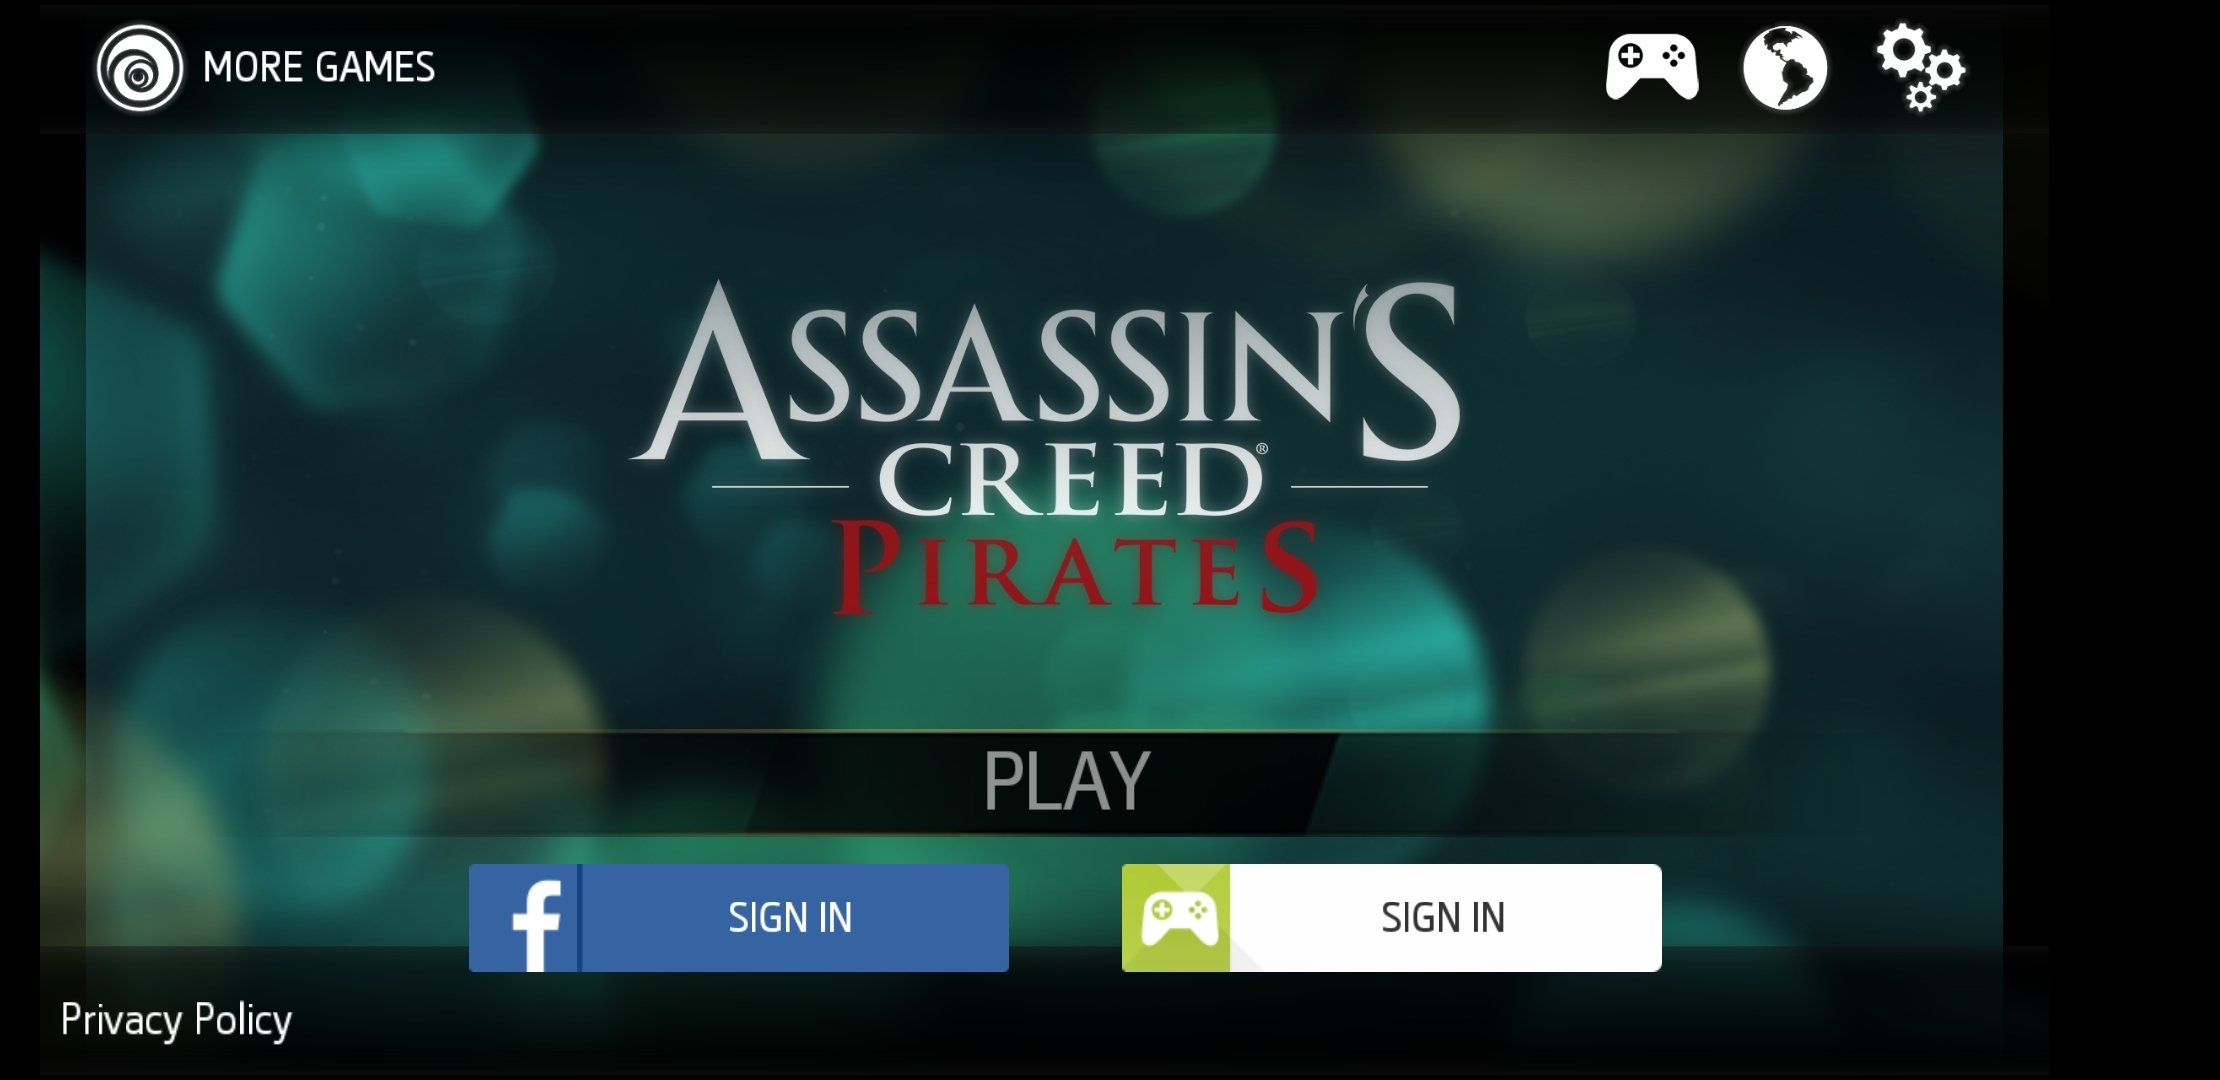 Assassin's Creed Pirates Android image 5